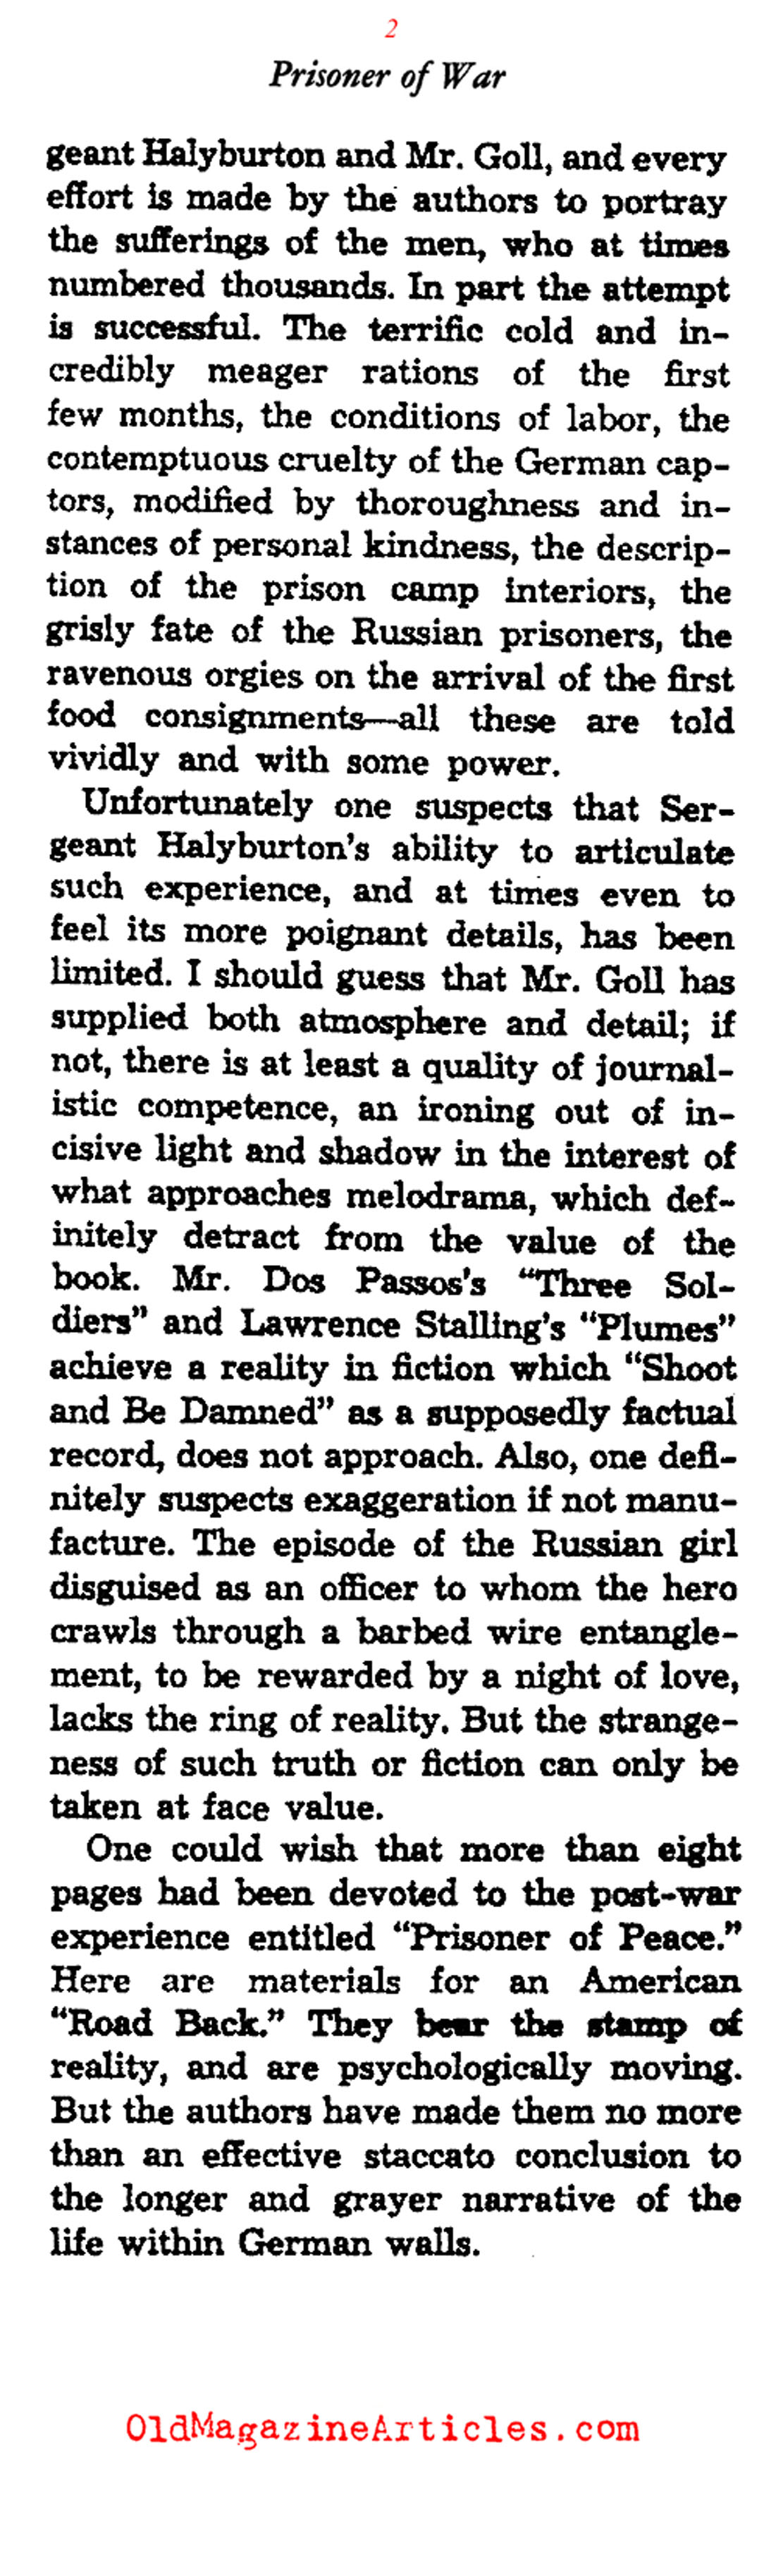 Prisoner of War (Saturday Review of Literature, 1932)